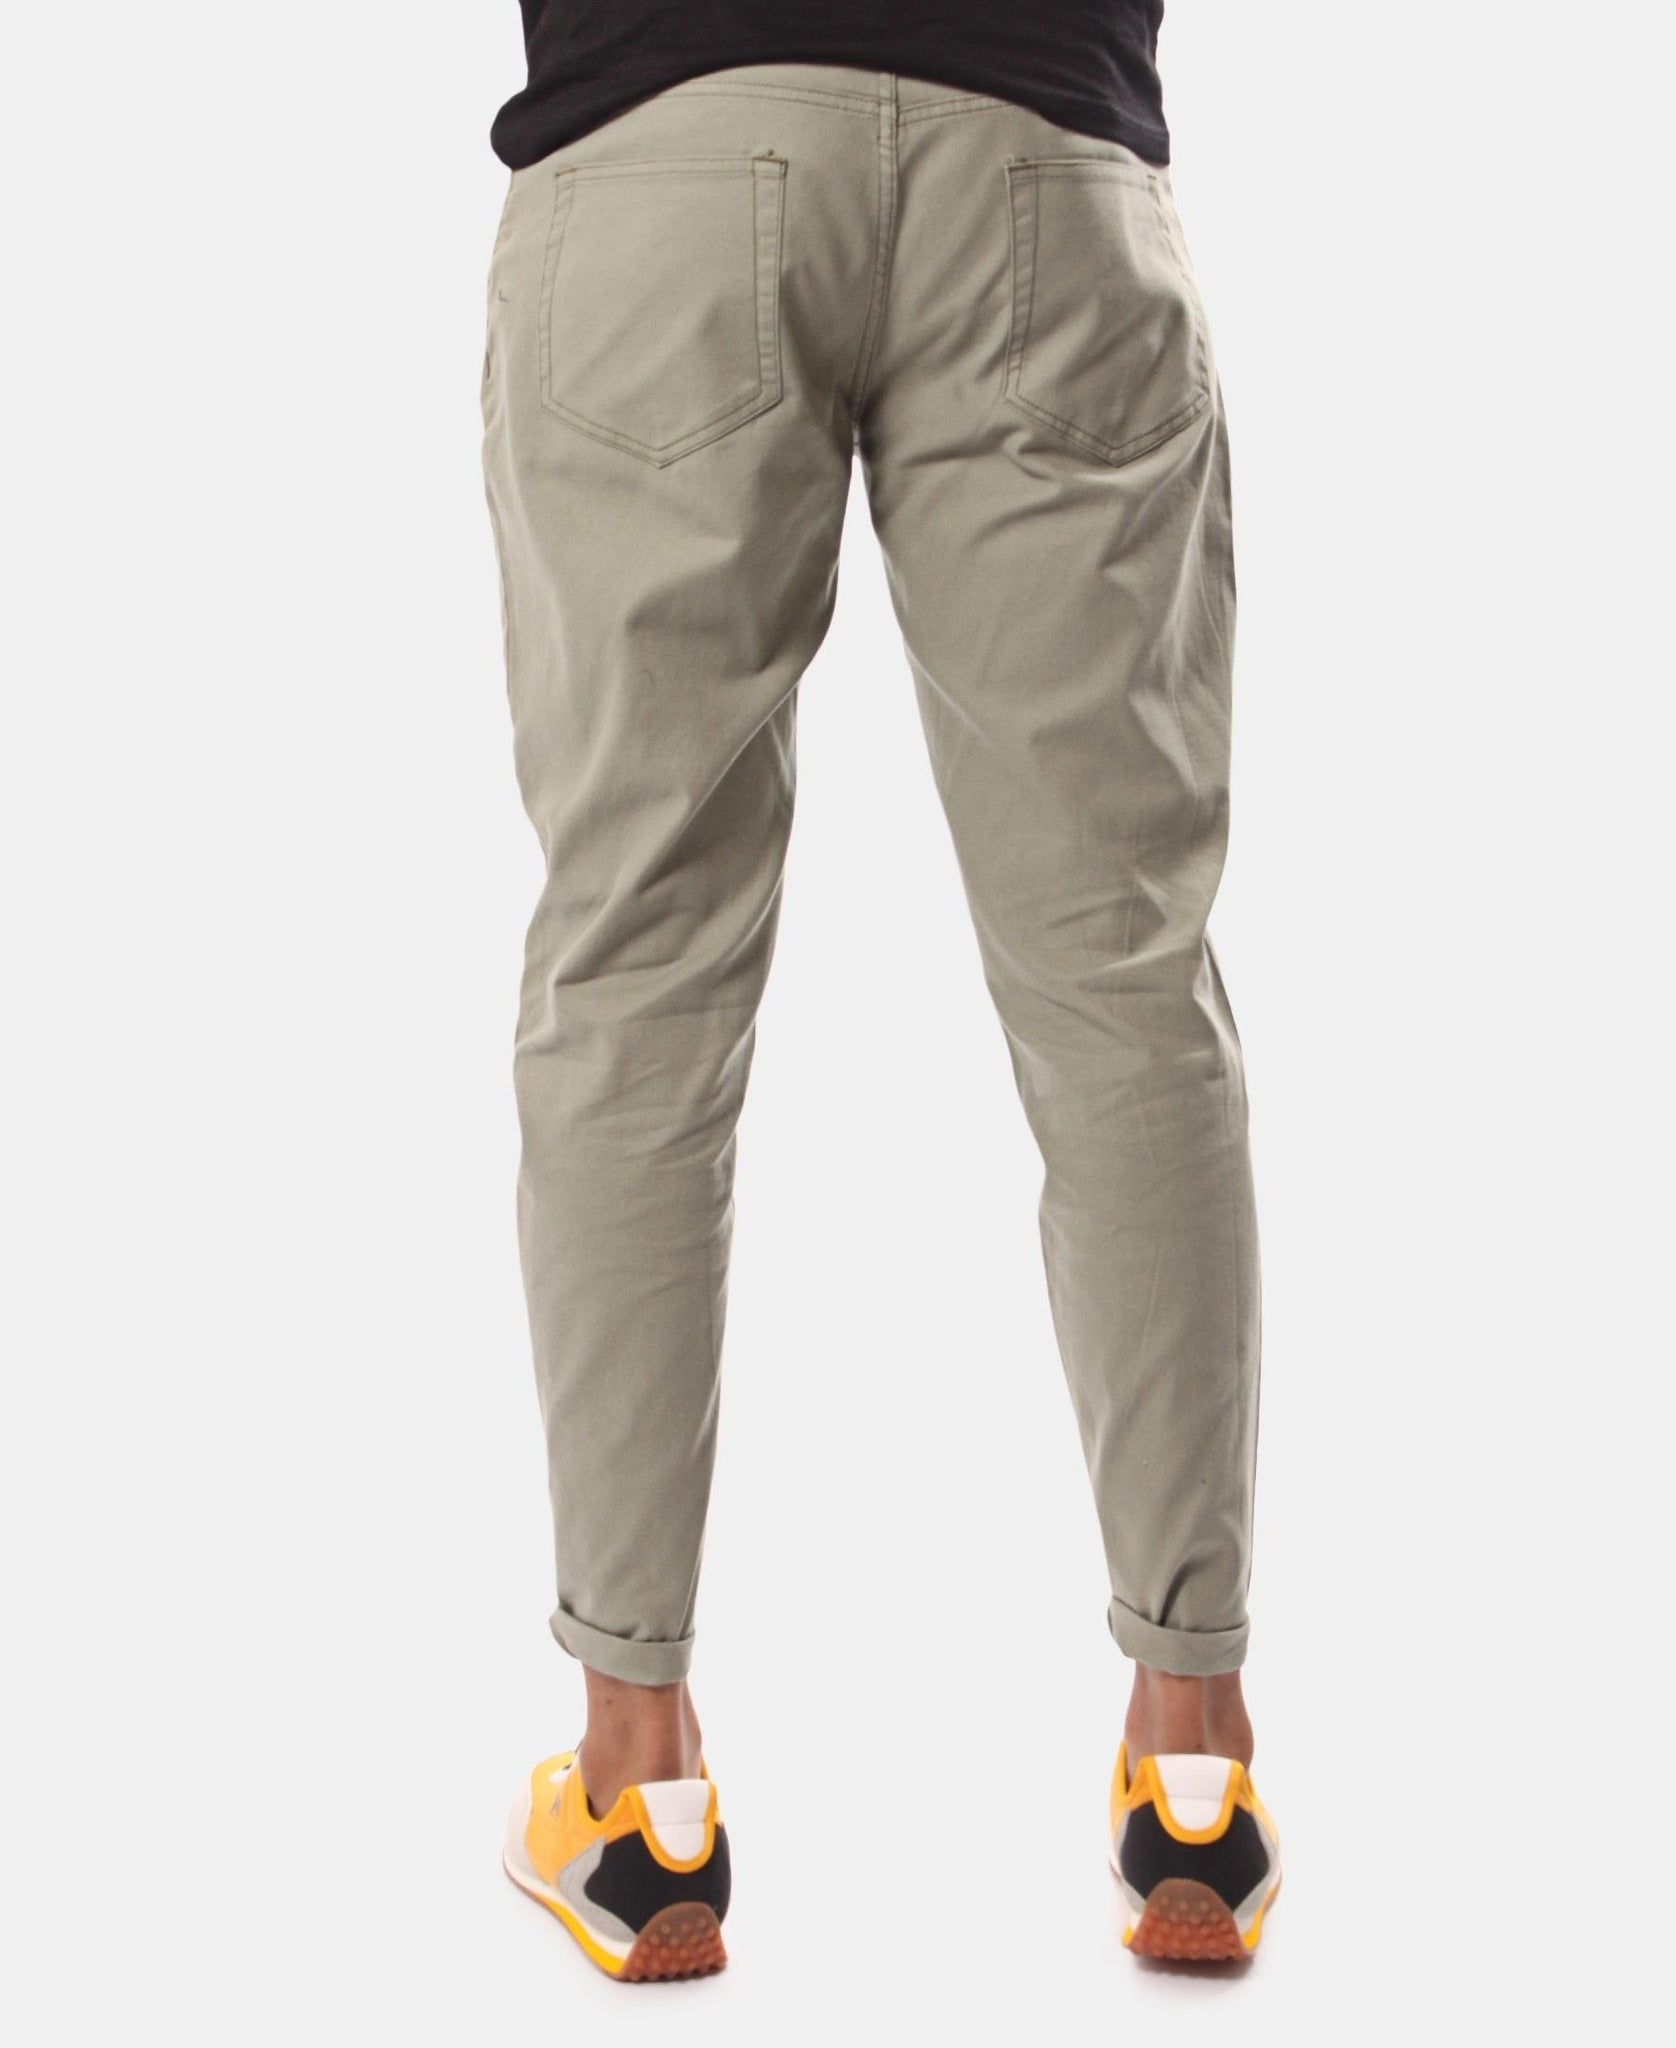 Men's Casual Pants - Light Green